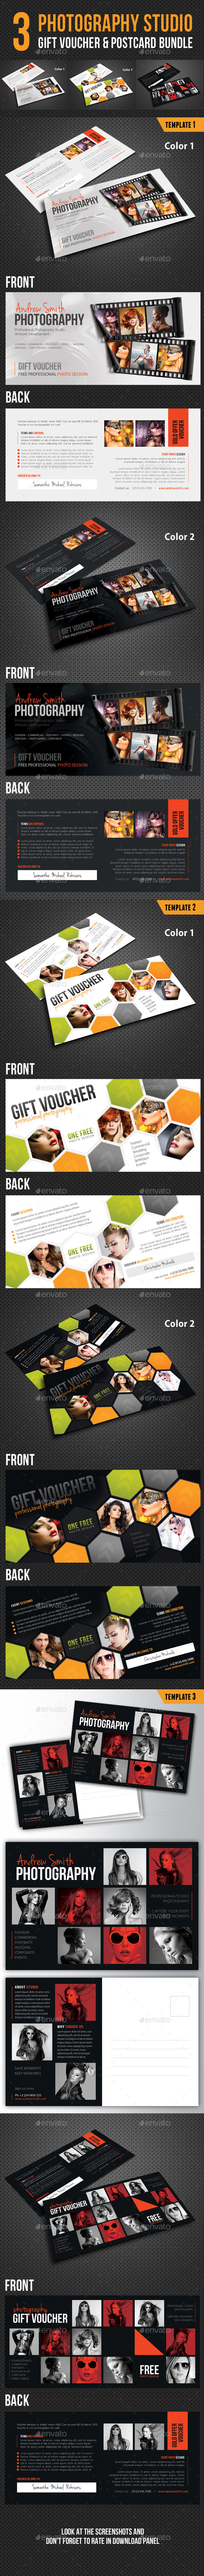 3 in 1 Photography Studio Gift Voucher Bundle 03 - Cards & Invites Print Templates